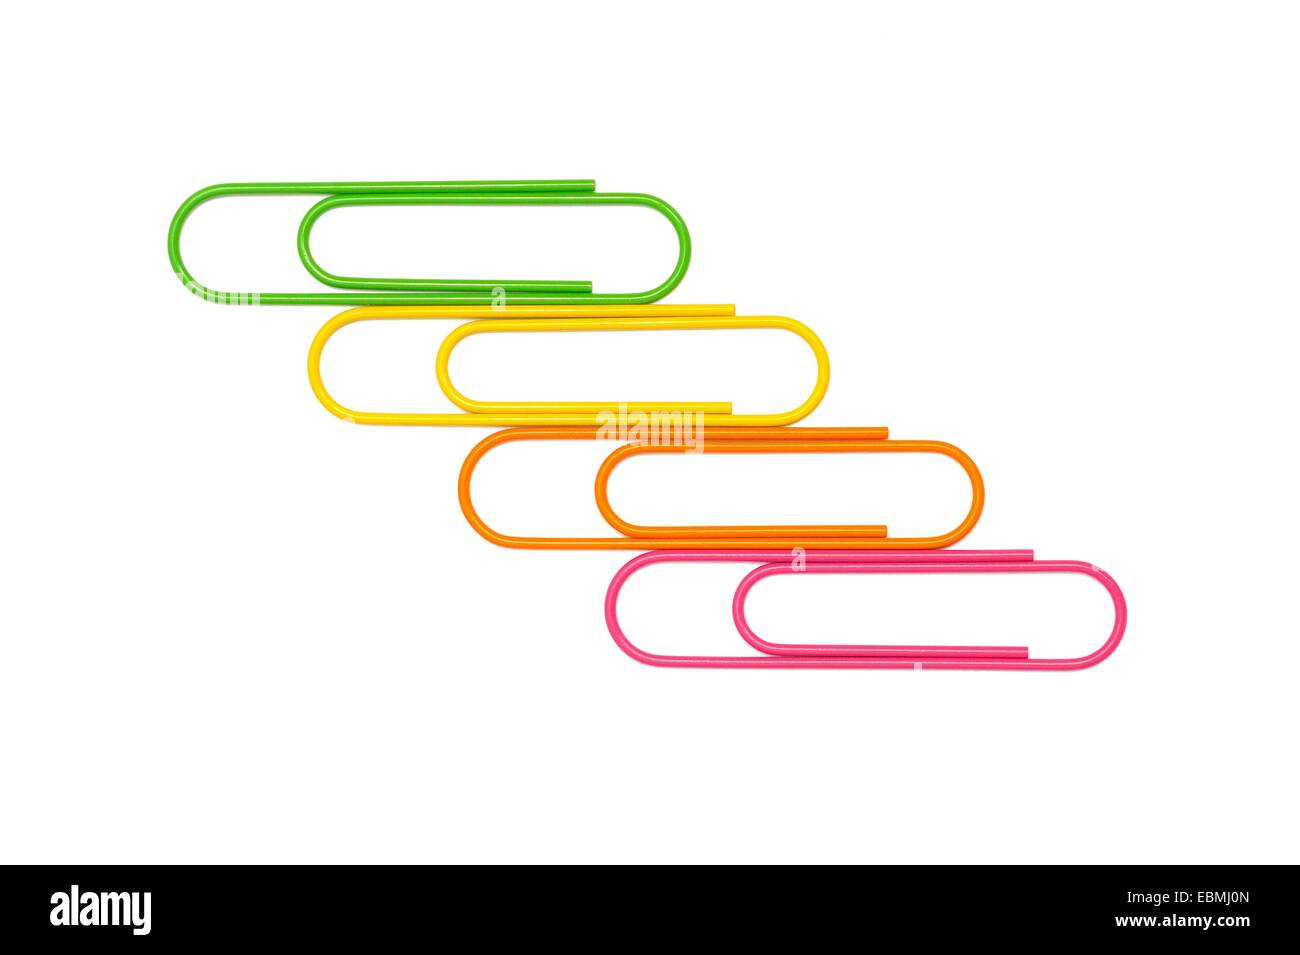 Giant paper clips arranged on a white paper background - Stock Image